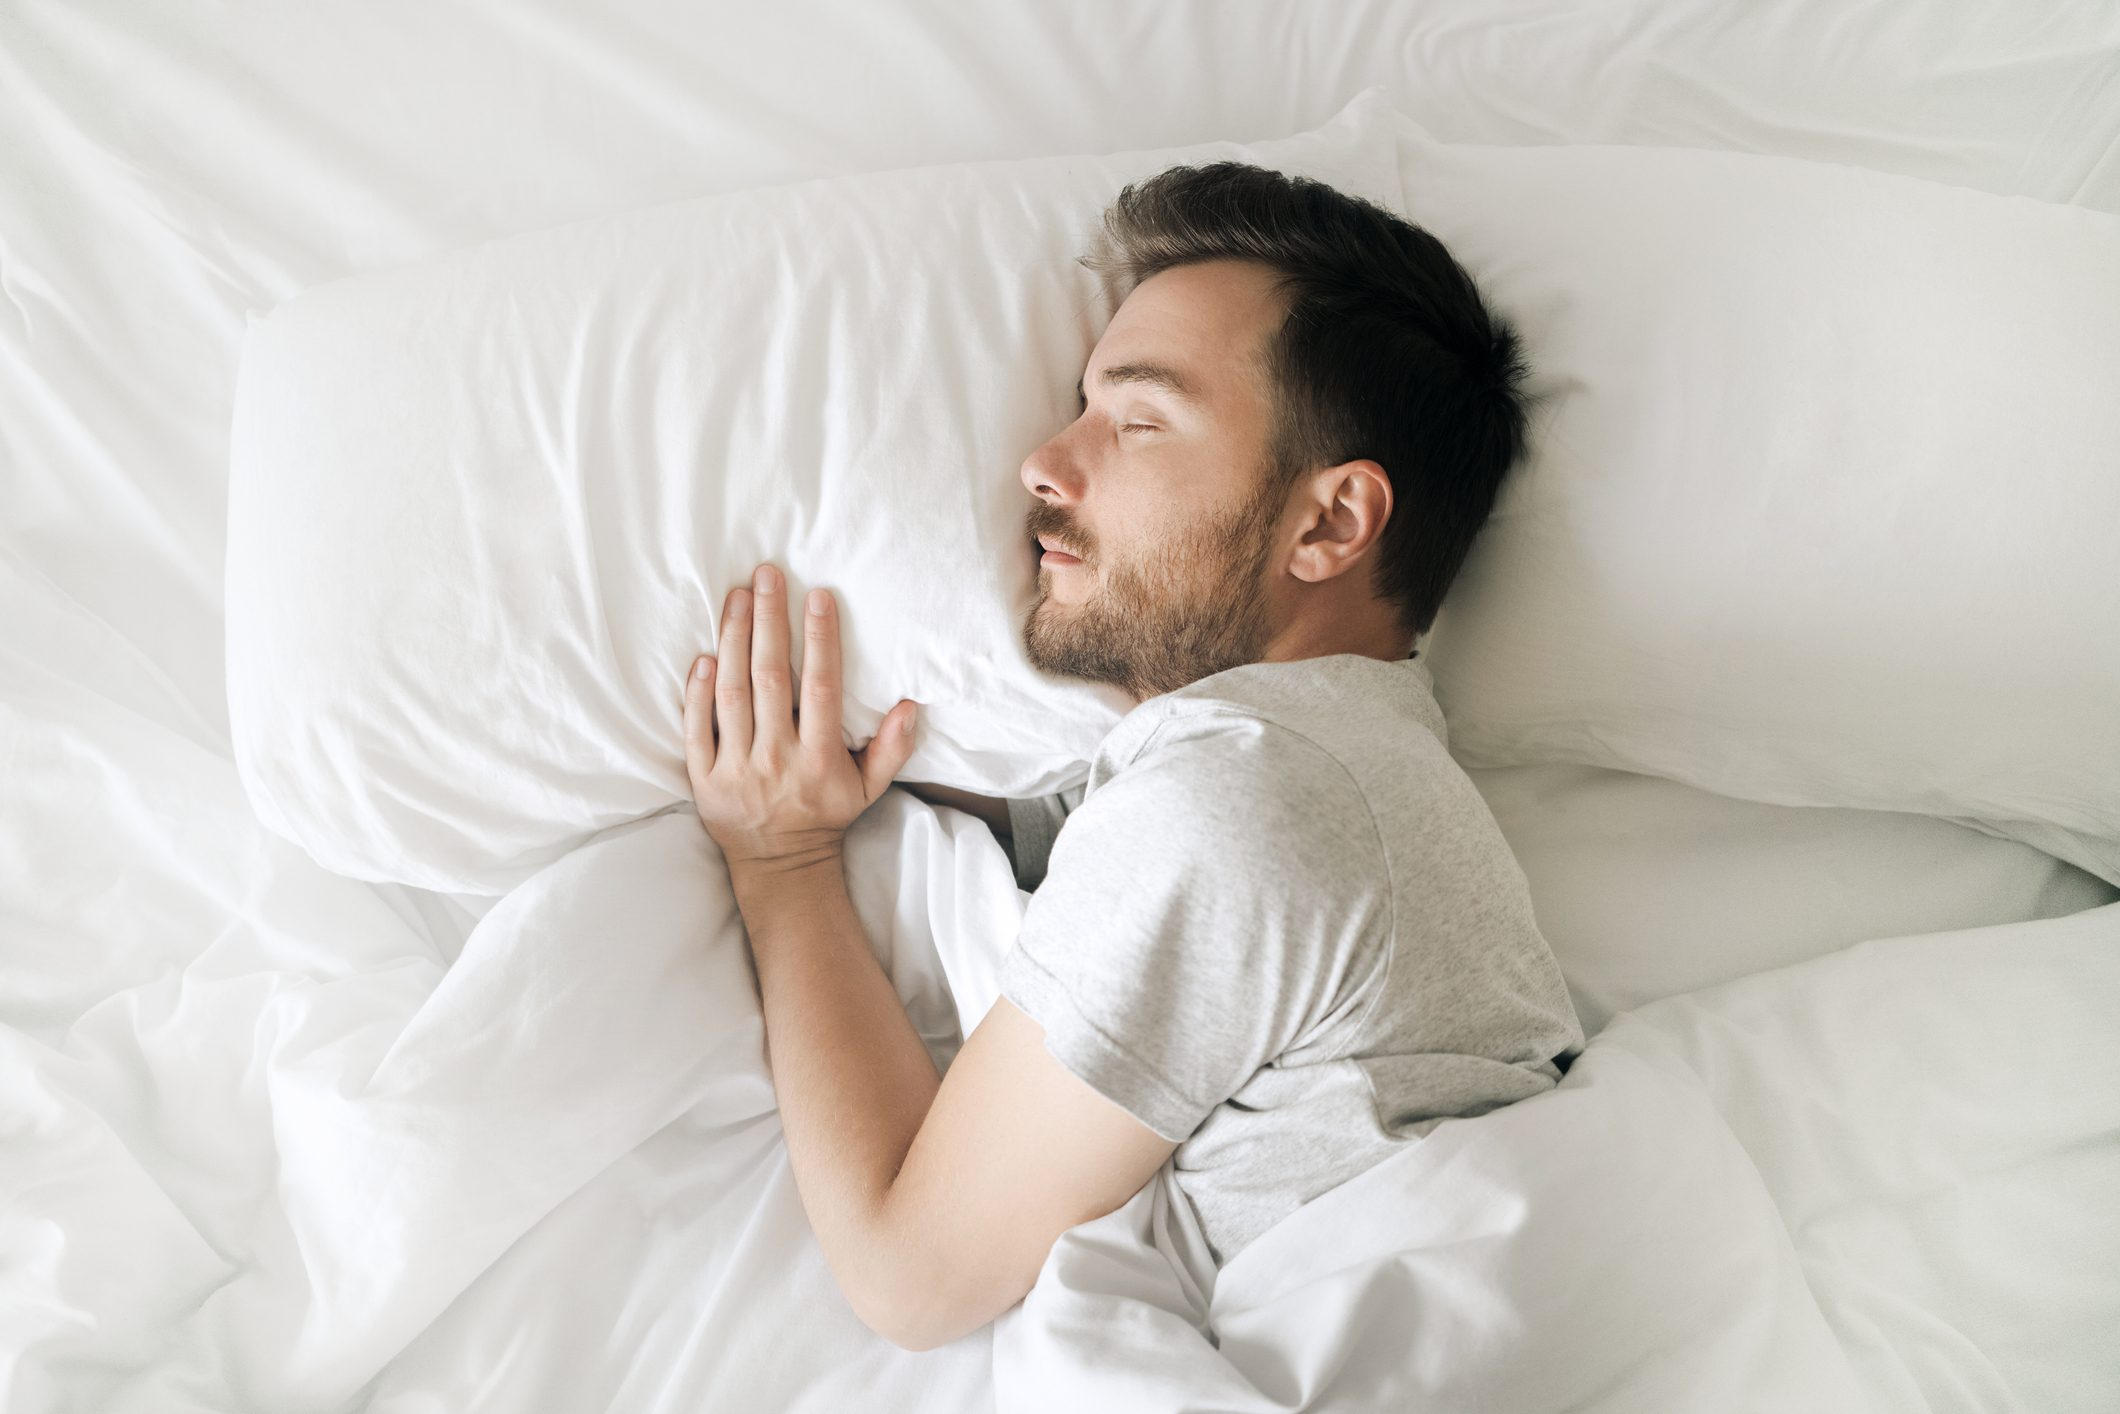 man sleeping in bed, holding his pillow